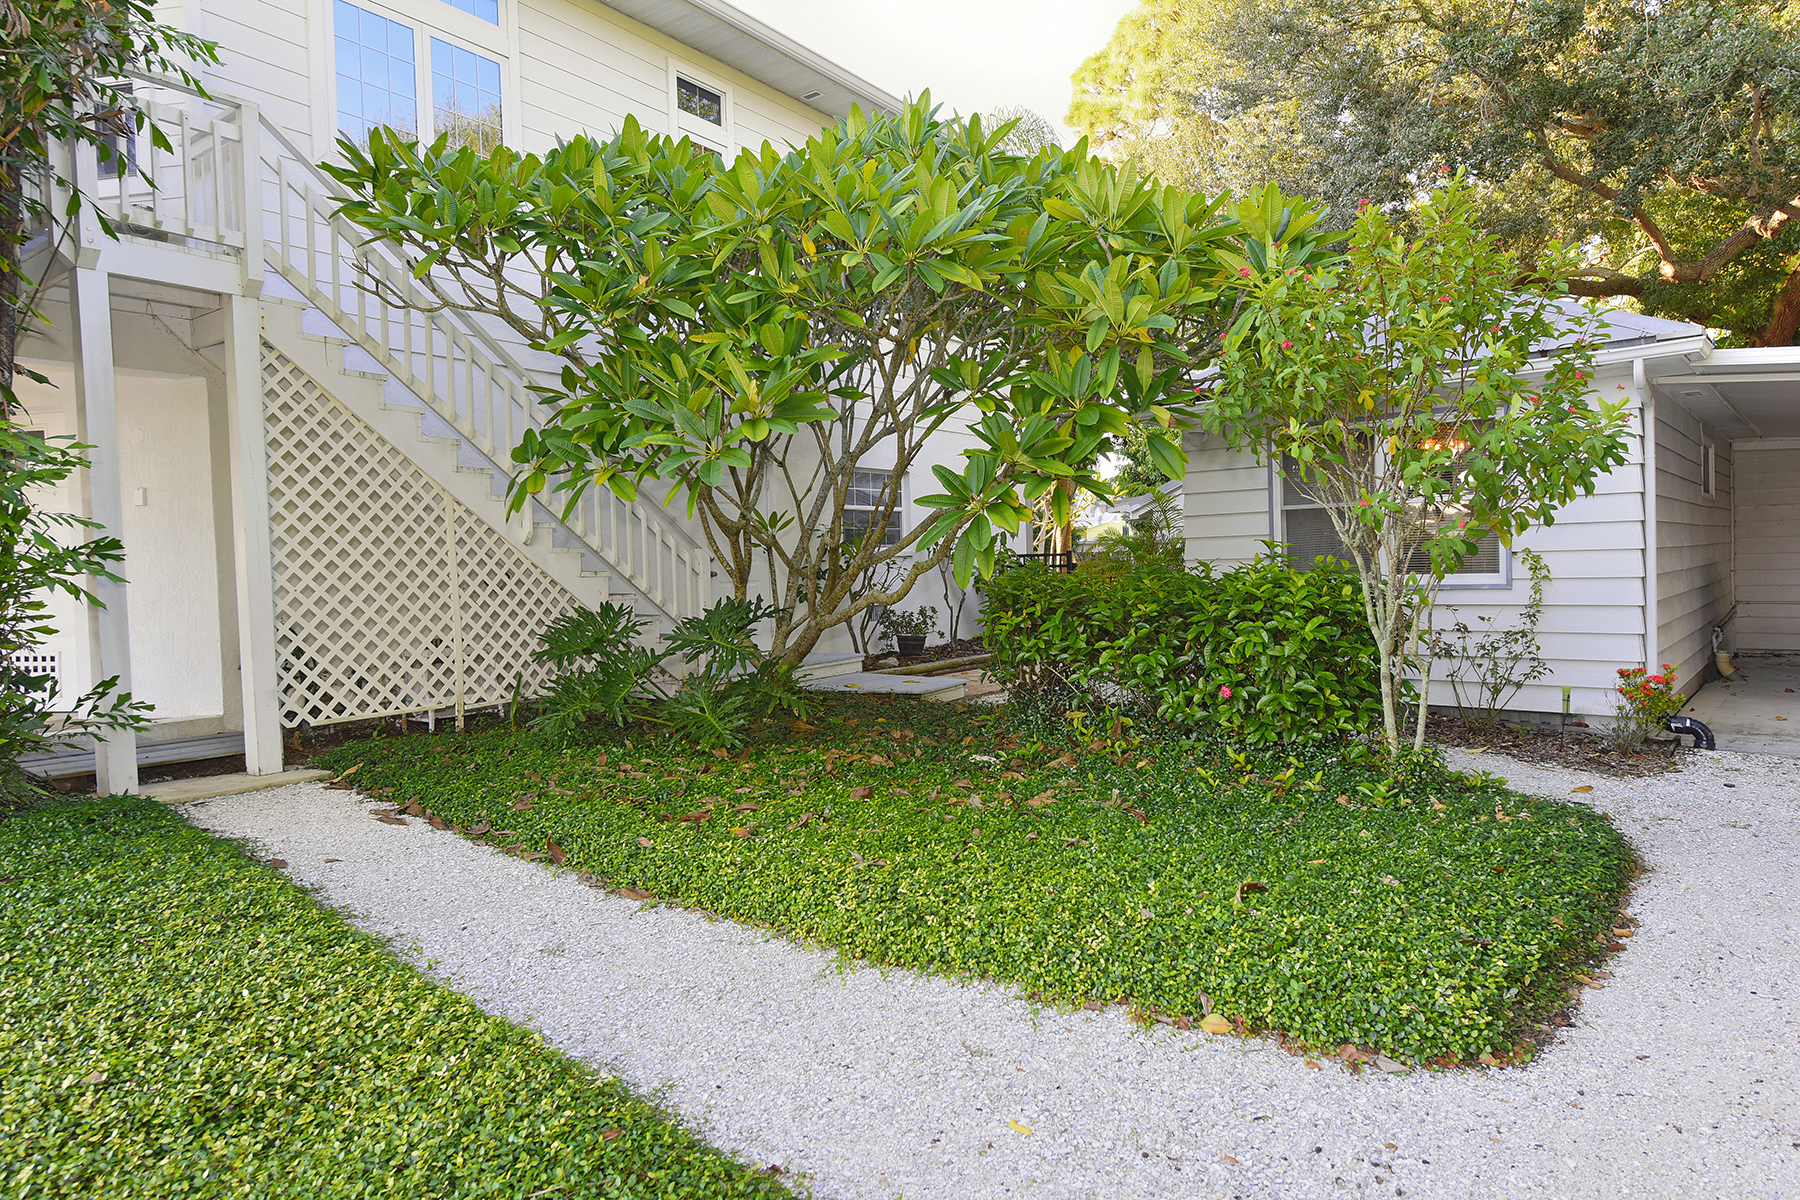 Additional photo for property listing at NOKOMIS 200  Sunrise Dr,  Nokomis, Florida 34275 United States